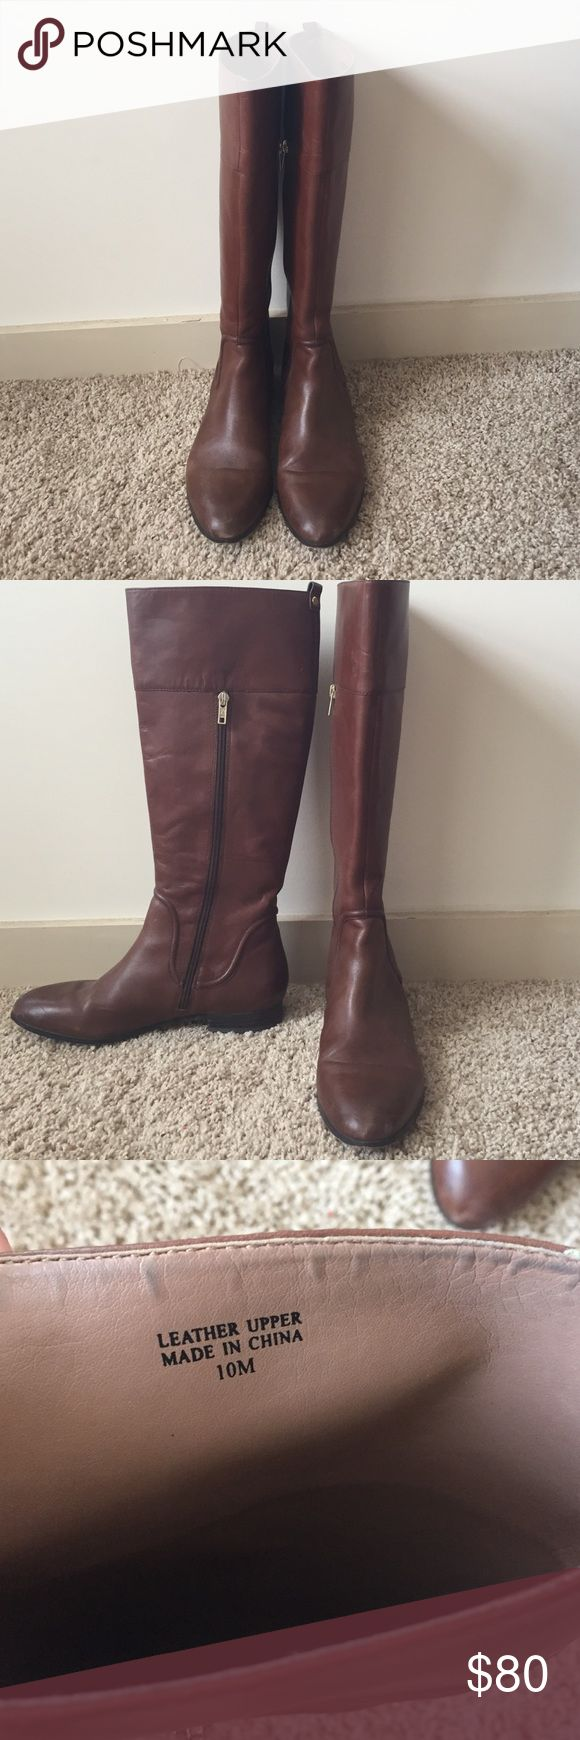 Ava and Aiden brown leather riding boots Gently used brown leather riding boots. These are very versatile and go with so many different things! Great fall boot! Shoes